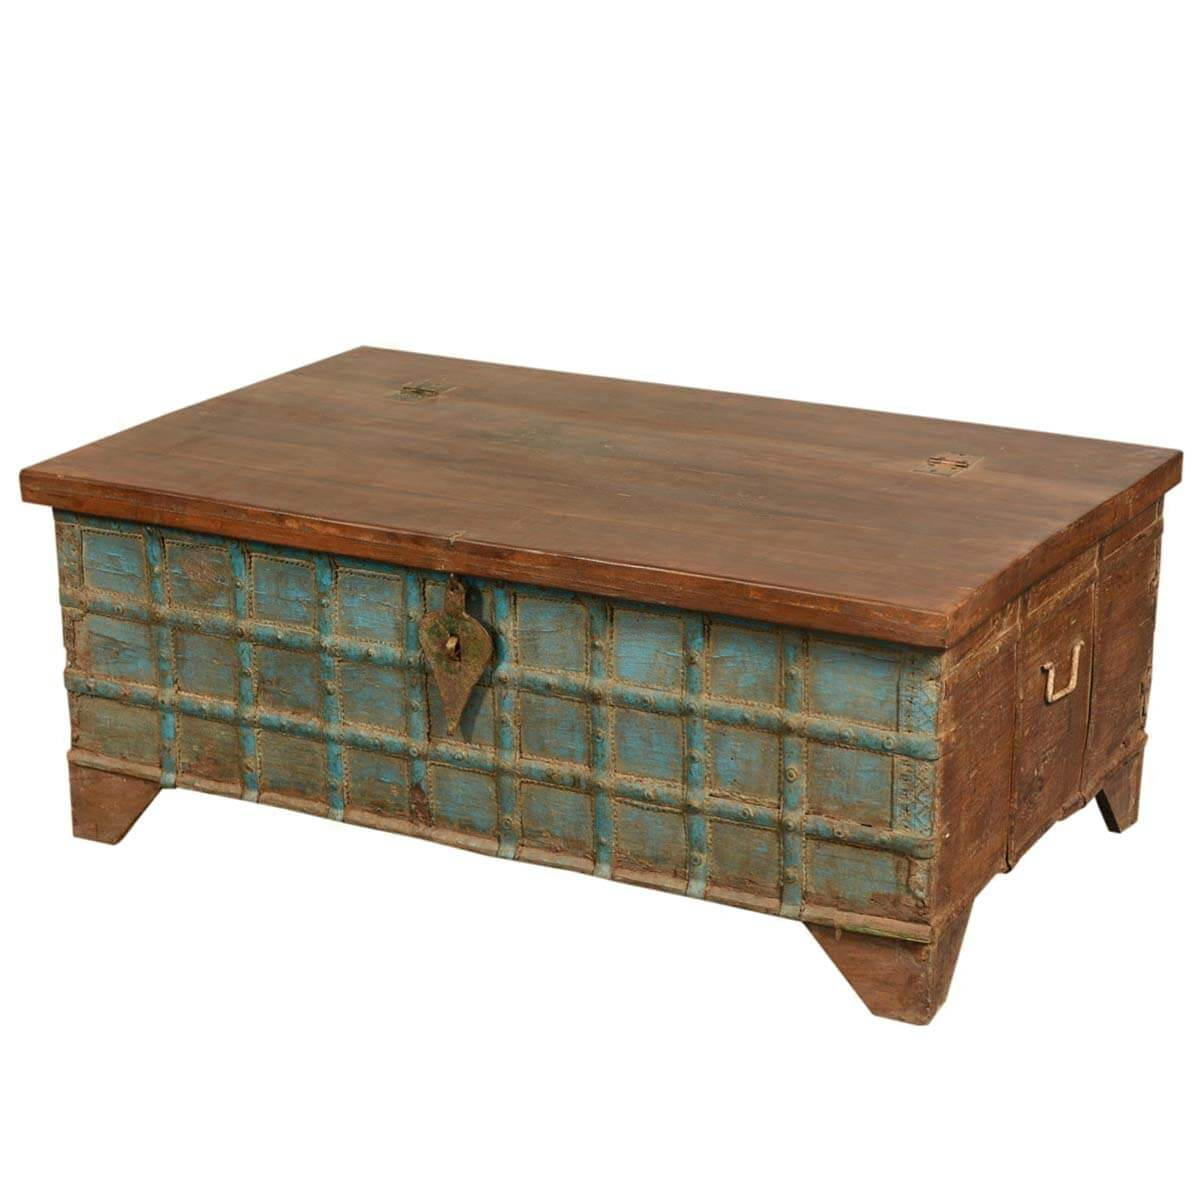 Asian Splendor Mango Wood Amp Brass Inlay Coffee Table Storage Chest Kokanee Solid Wood Storage